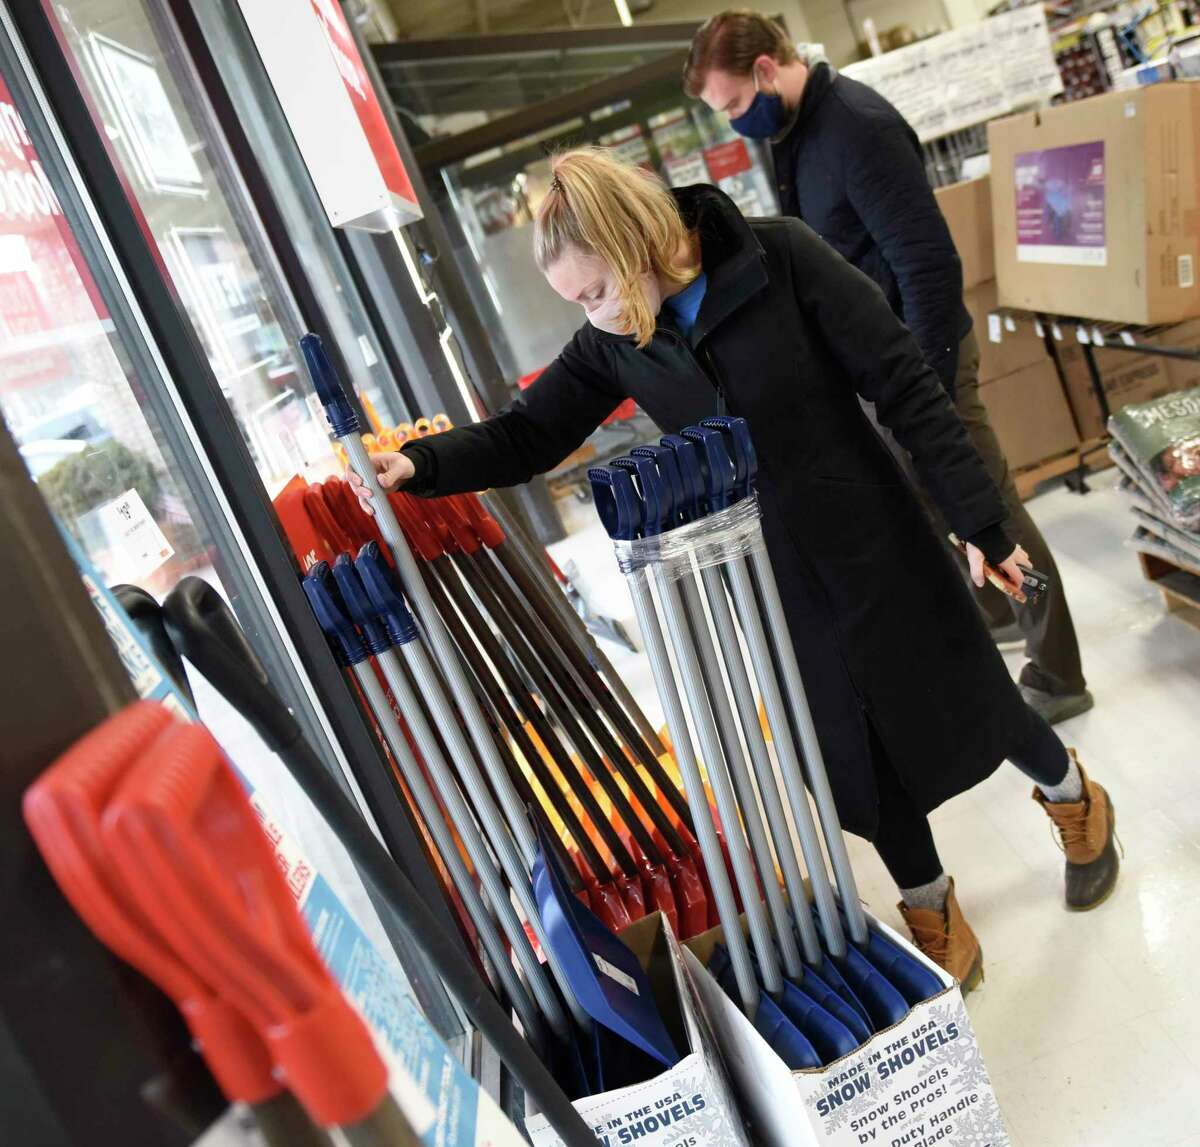 Stamford's Alexandra Maksimow and Tyler Ferraro pick out snow shovels at Karp's Ace Hardware in Stamford, Conn. Wednesday, Dec. 16, 2020. Folks stocked up on shovels, ice melt, and groceries in anticipation of the winter storm expected to dump more than a foot of snow starting Wednesday night.